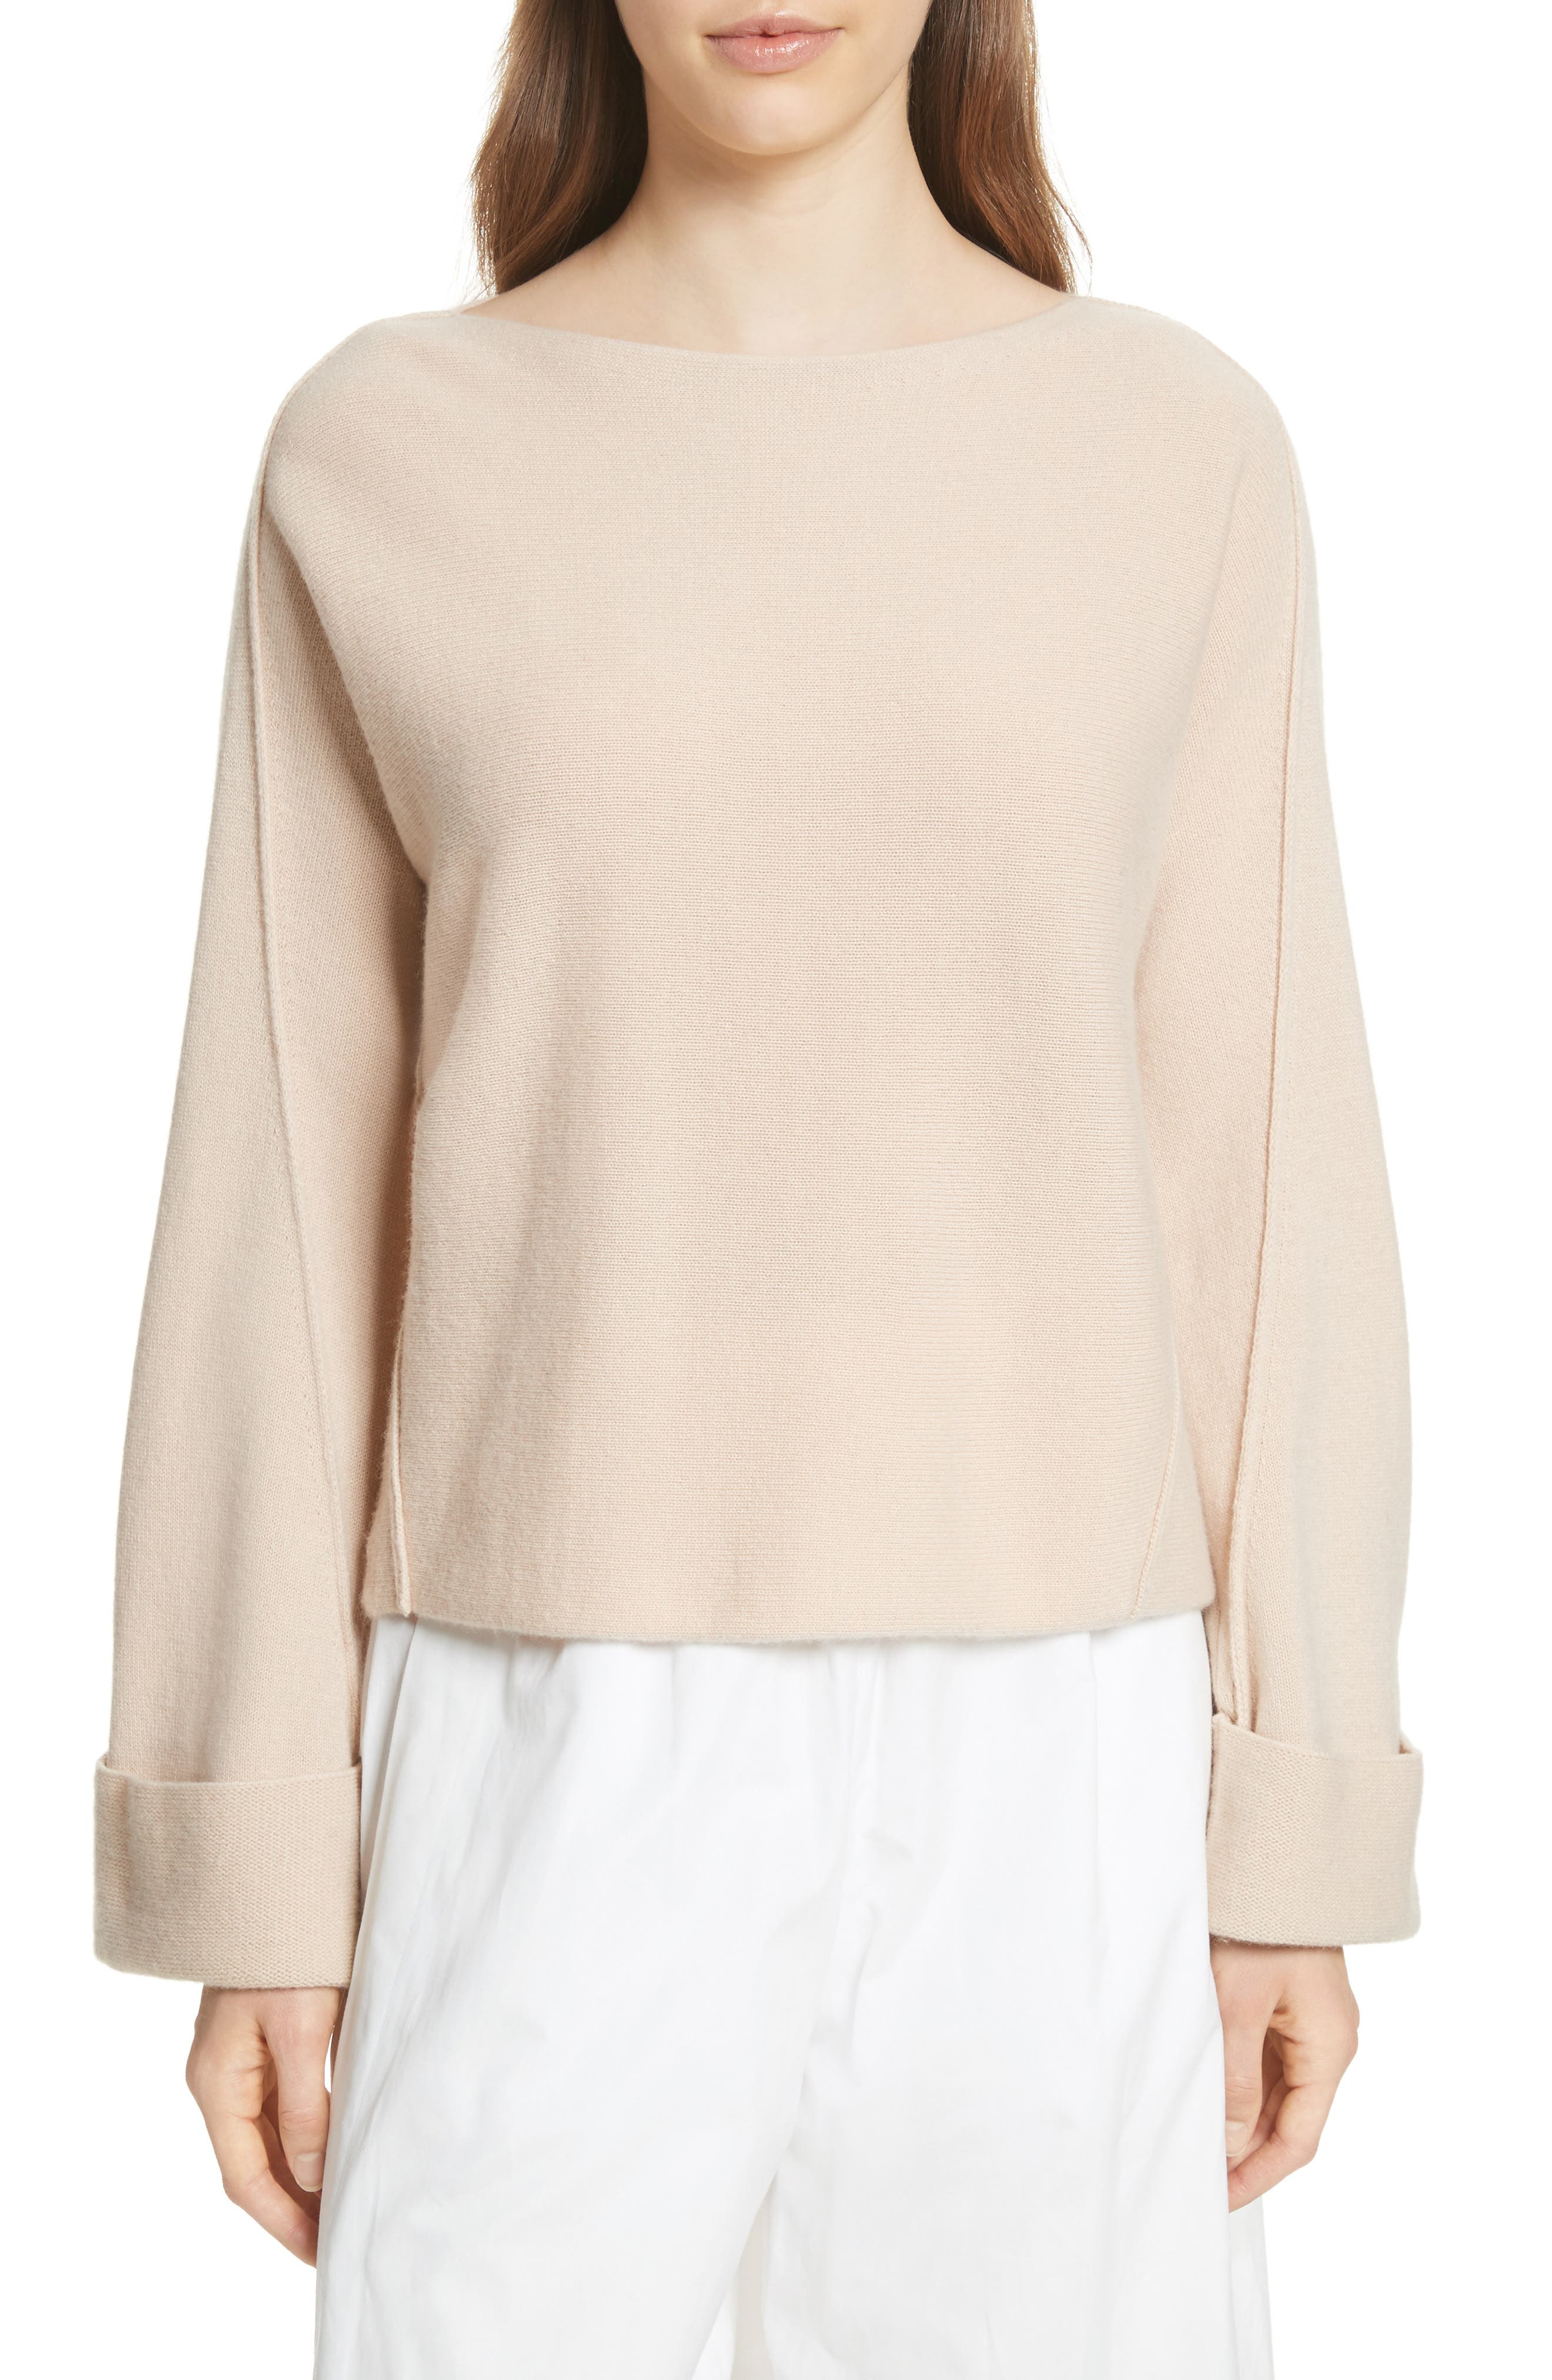 VINCE Cuffed Sleeve Wool & Cashmere Sweater, Main, color, 298